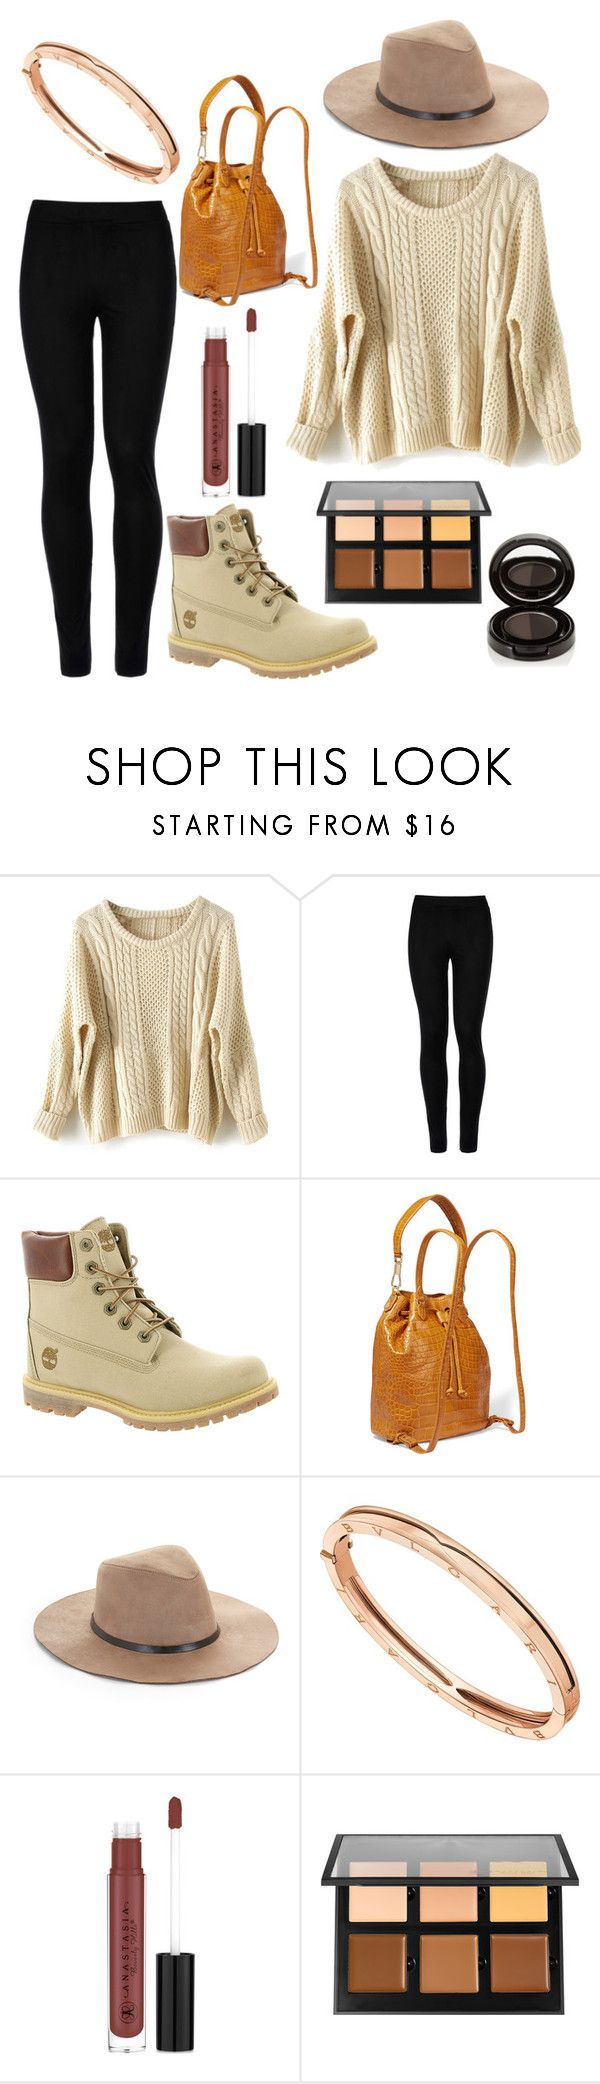 """."" by lauravf ❤ liked on Polyvore featuring Wolford, Timberland, Elizabeth and James, BCBGMAXAZRIA, Bulgari and Anastasia Beverly Hills"